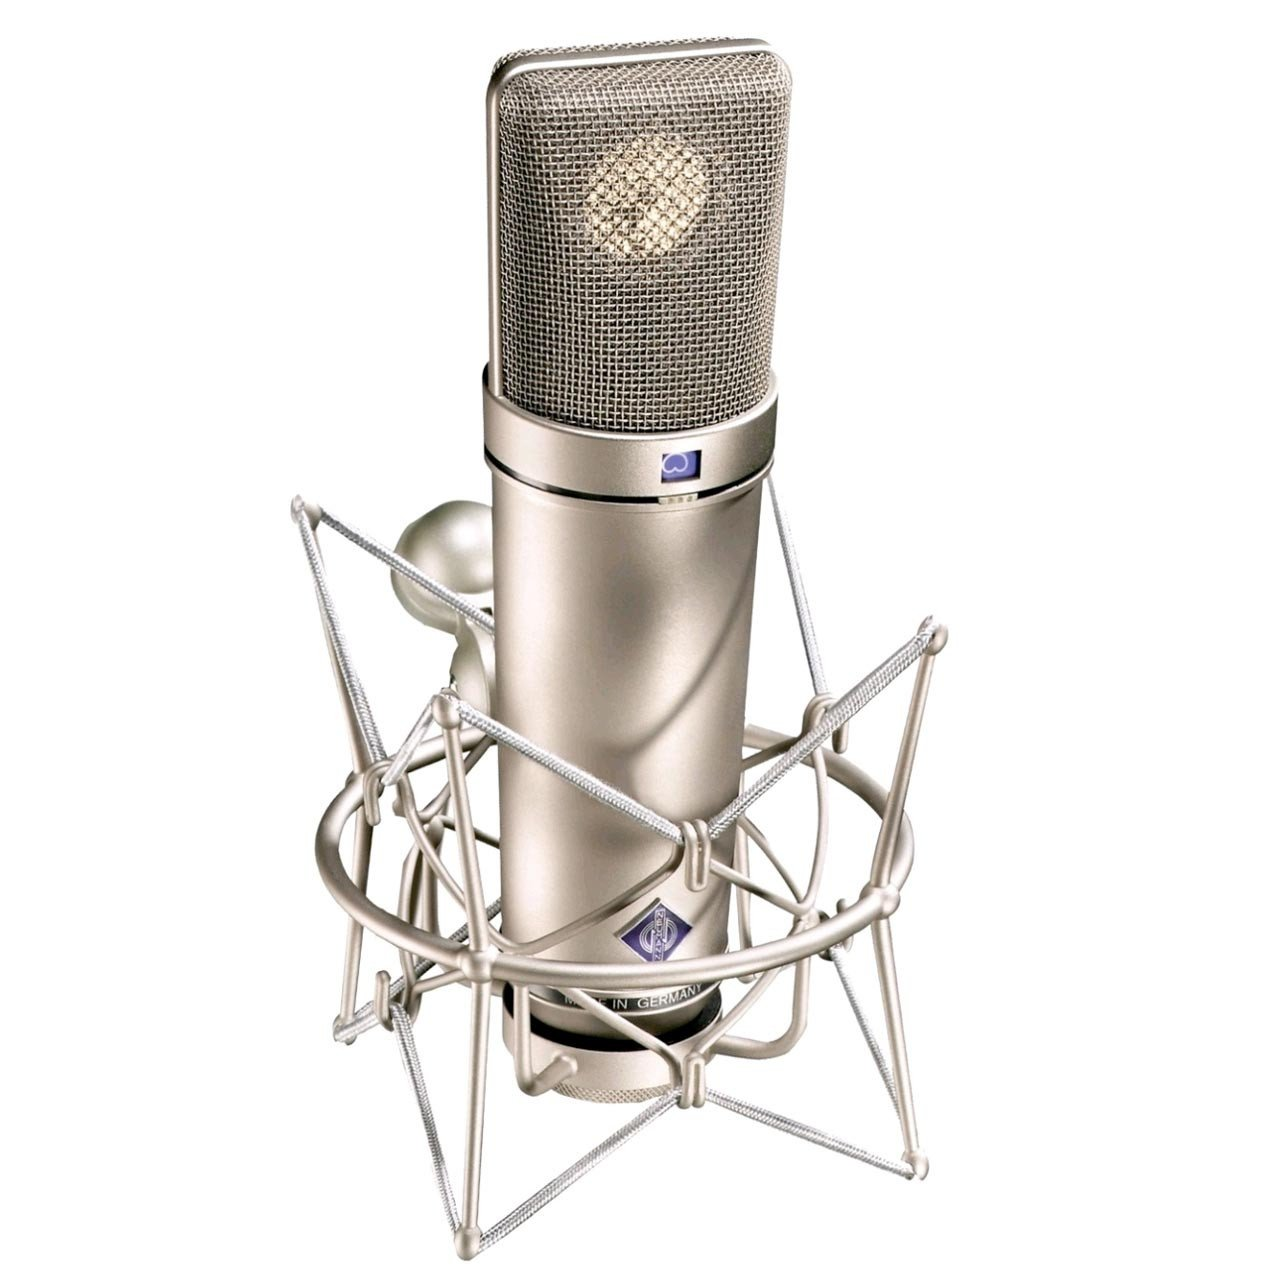 Condenser Microphones - Neumann U 87 Ai Switchable Studio Microphone Studio Set